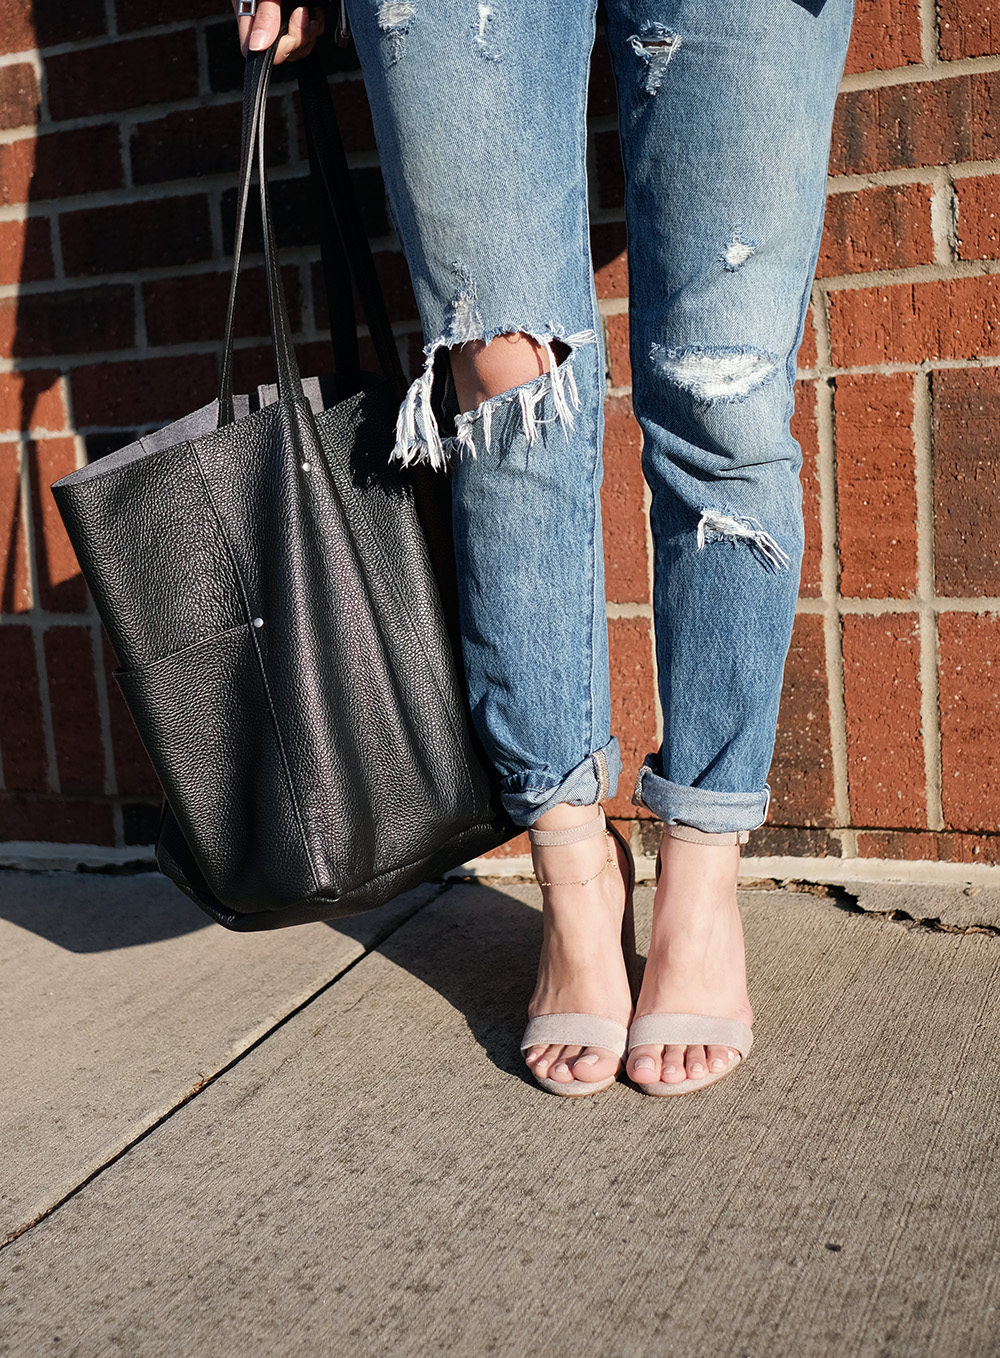 american eagle wander leather tote, steve madden carrson block heel sandals, levis 501 skinny